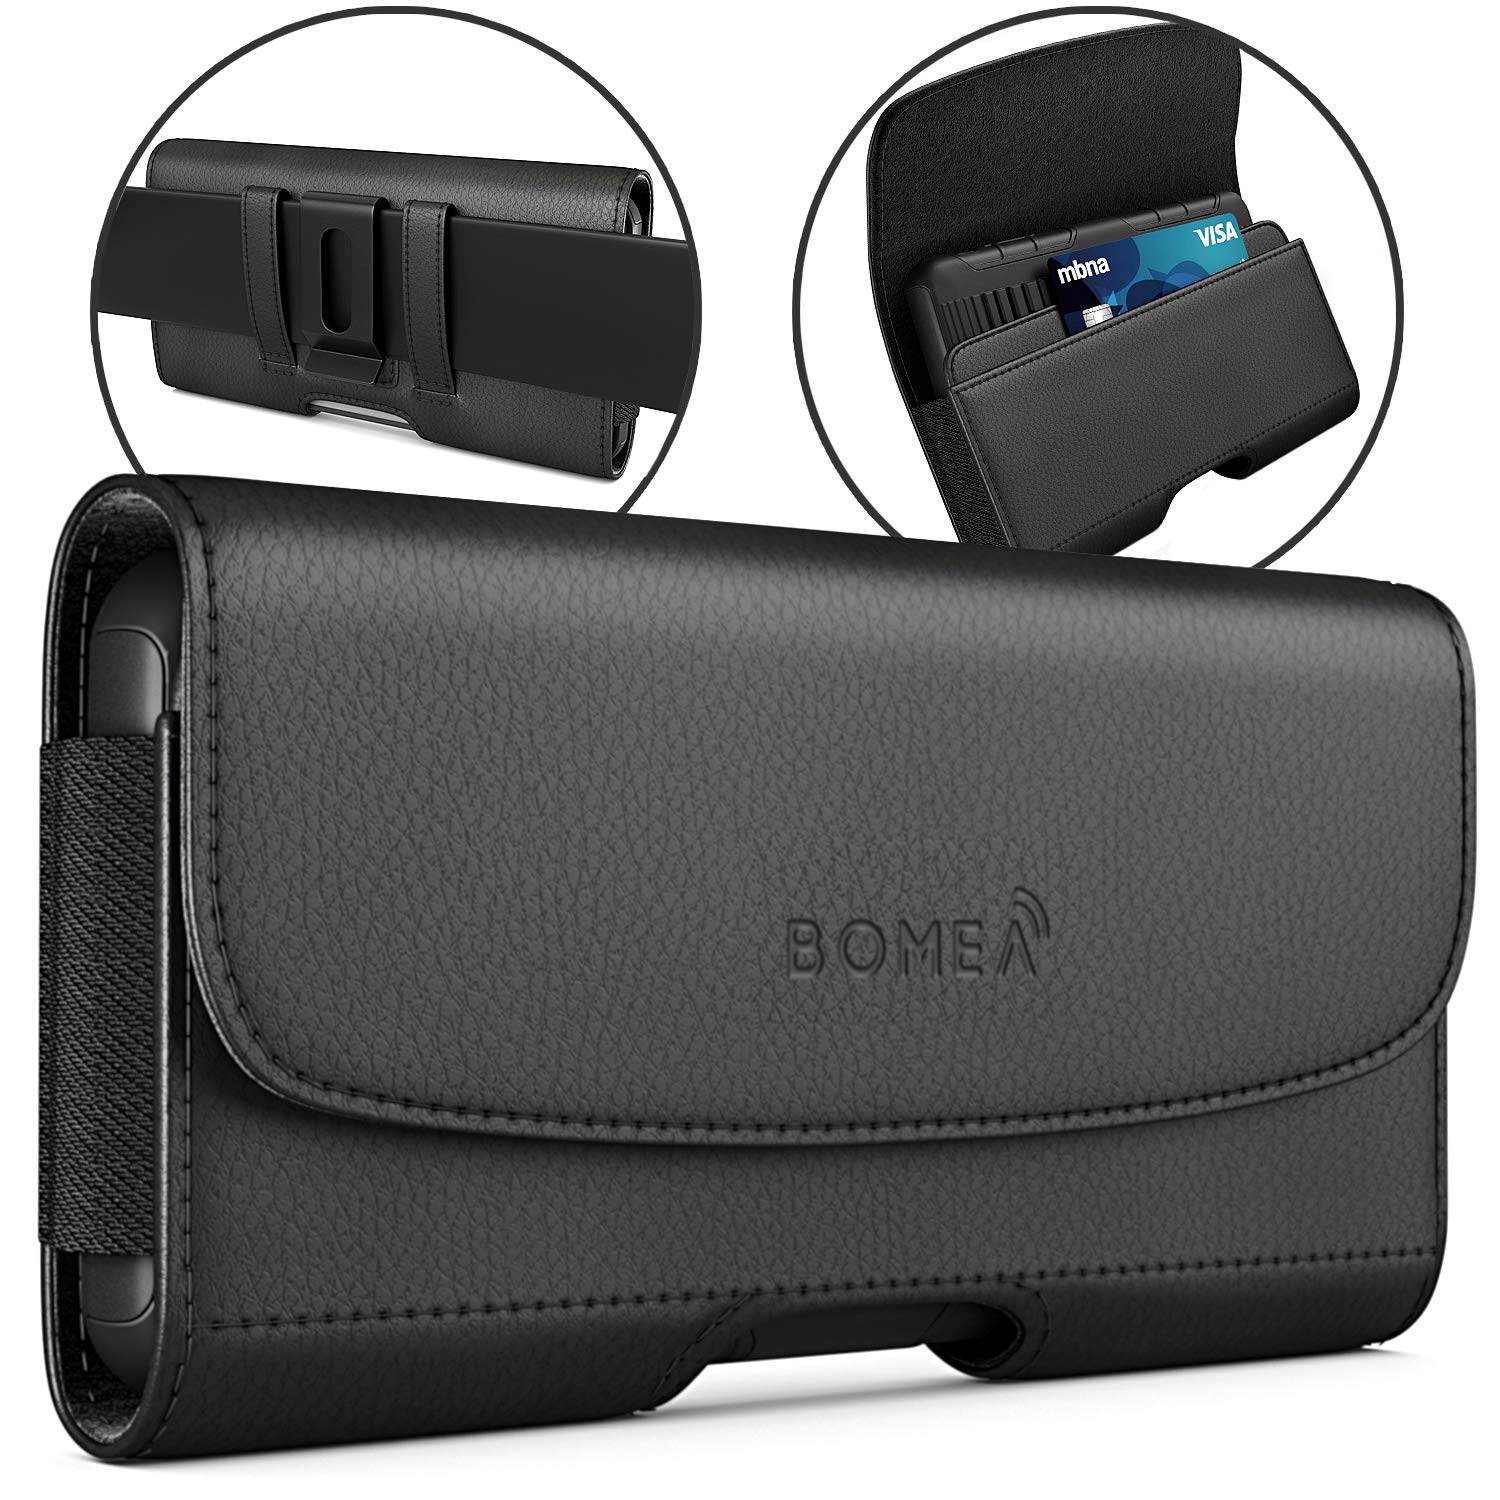 Bomea iPhone Leather Holster Holder